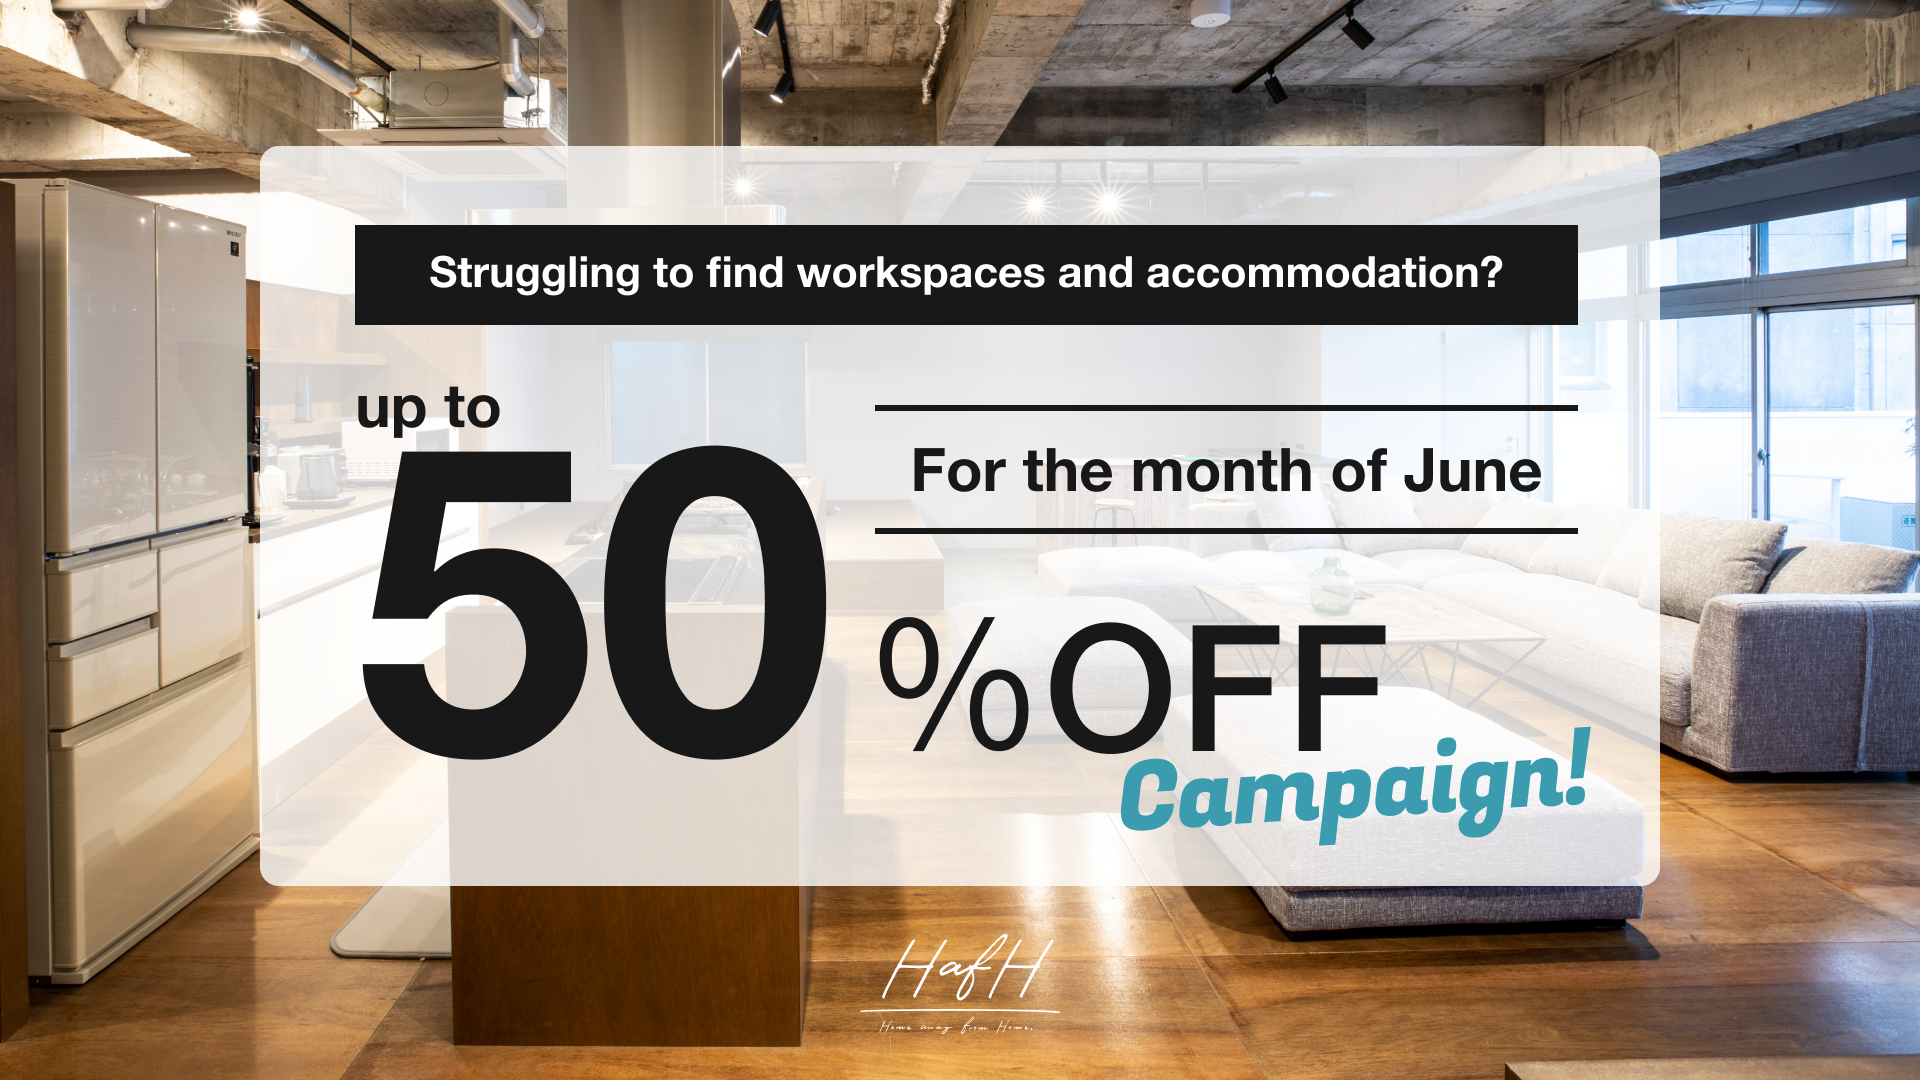 【Up to 50% off!】Up to 50% off HafH's subscription accommodation service for the month of June!